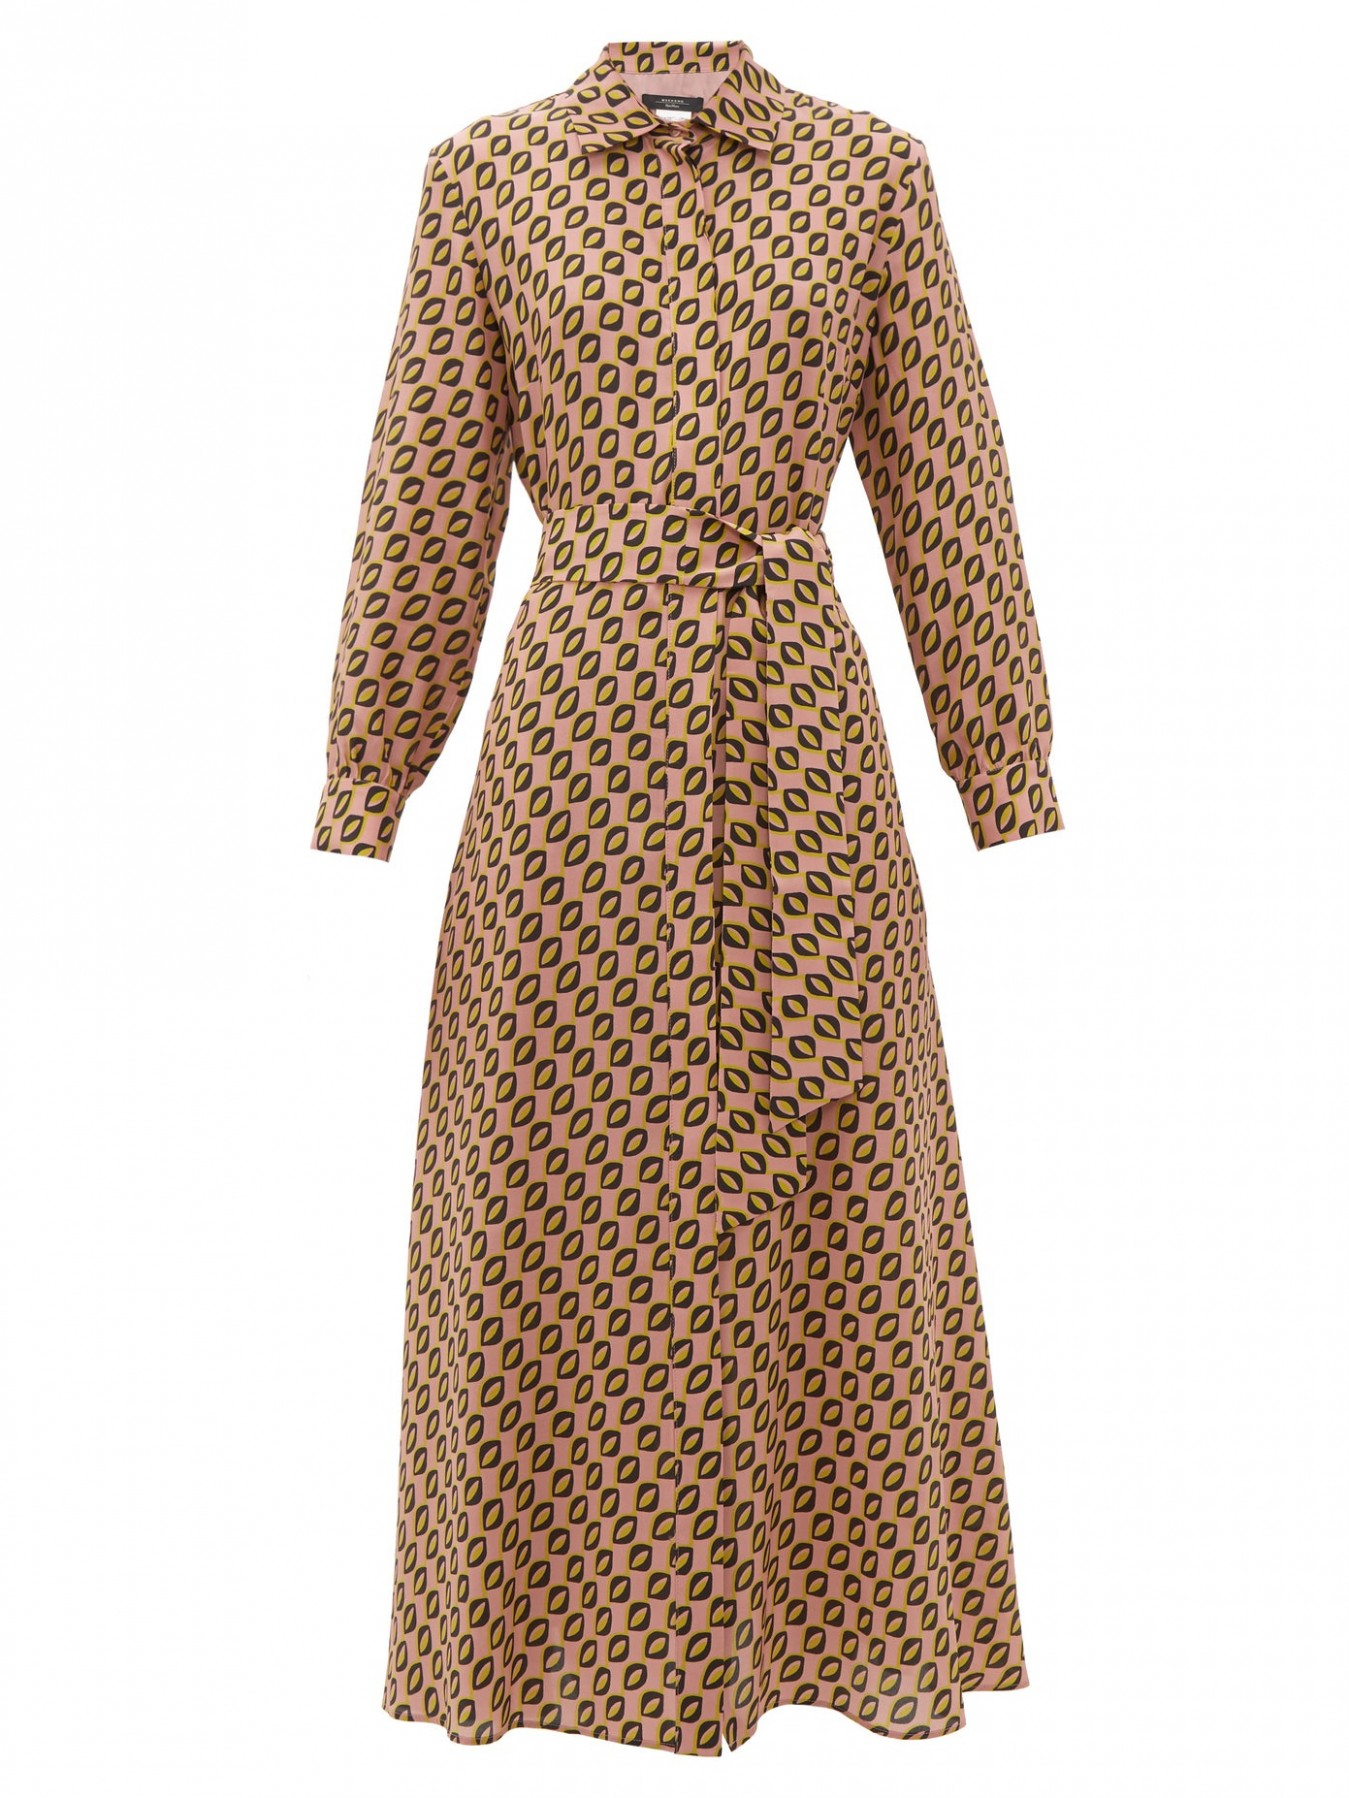 samantha shirtdress weekend max mara matchesfashion uk max mara weekend kleid